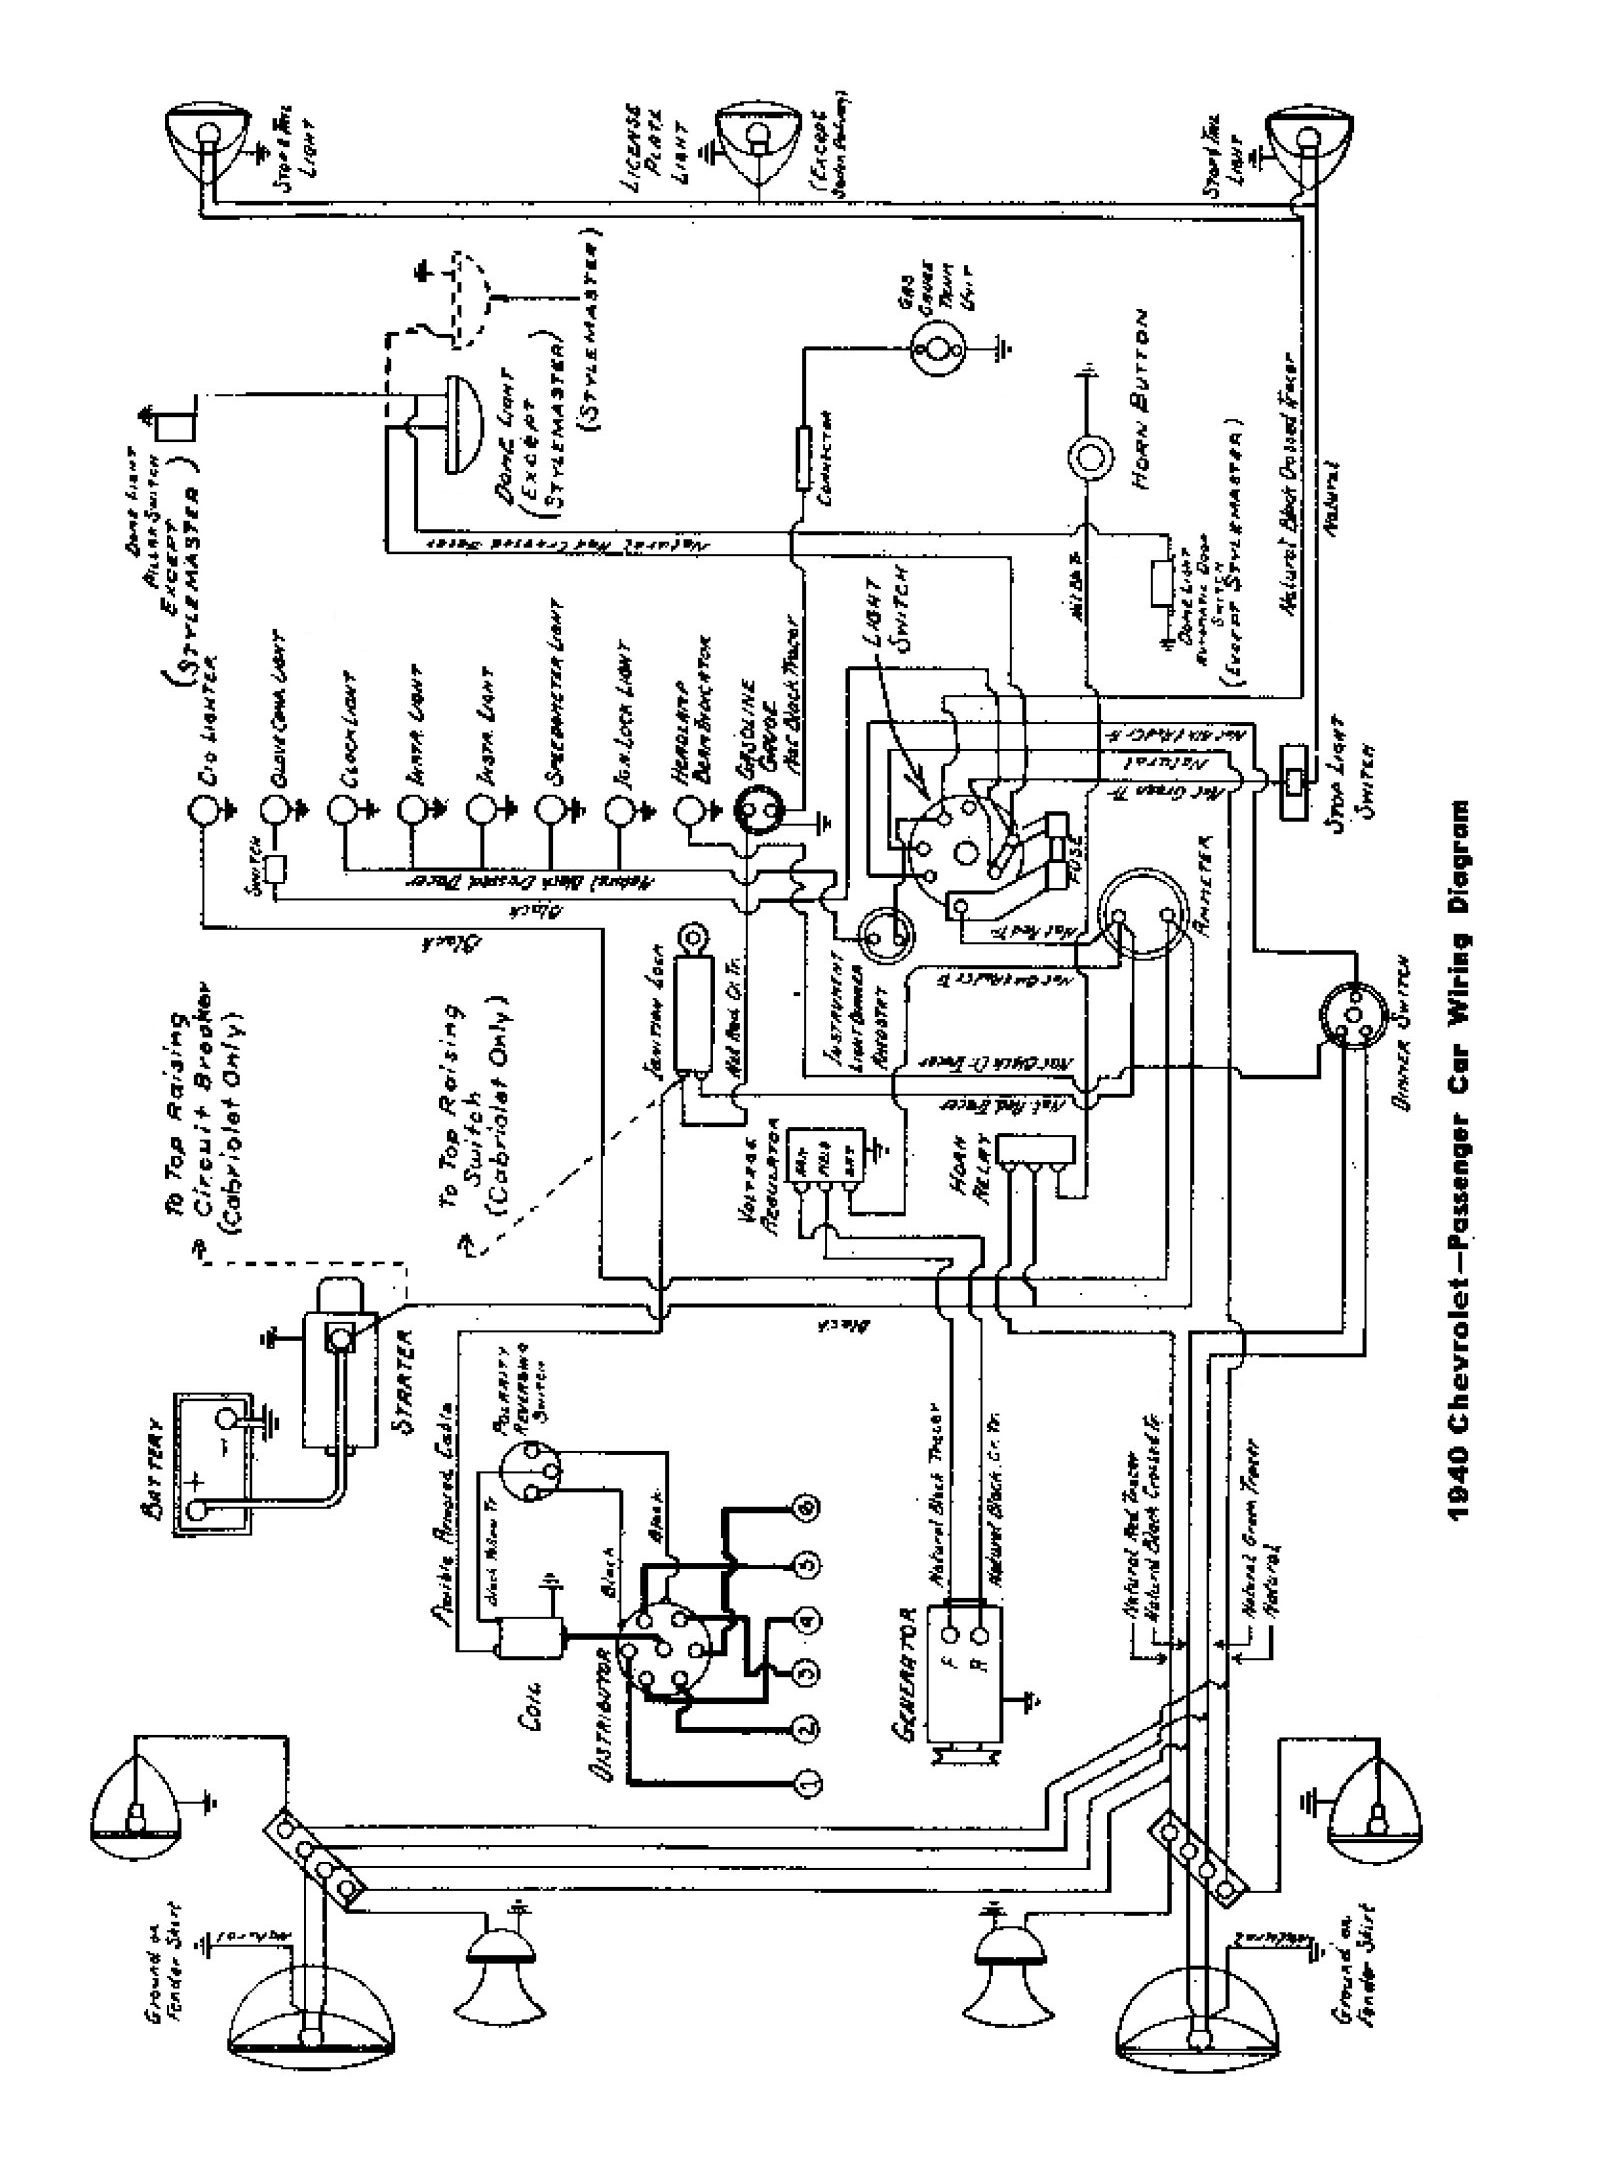 1939 Cadillac Wiring Diagram. 1950 Ford Wiring Diagram